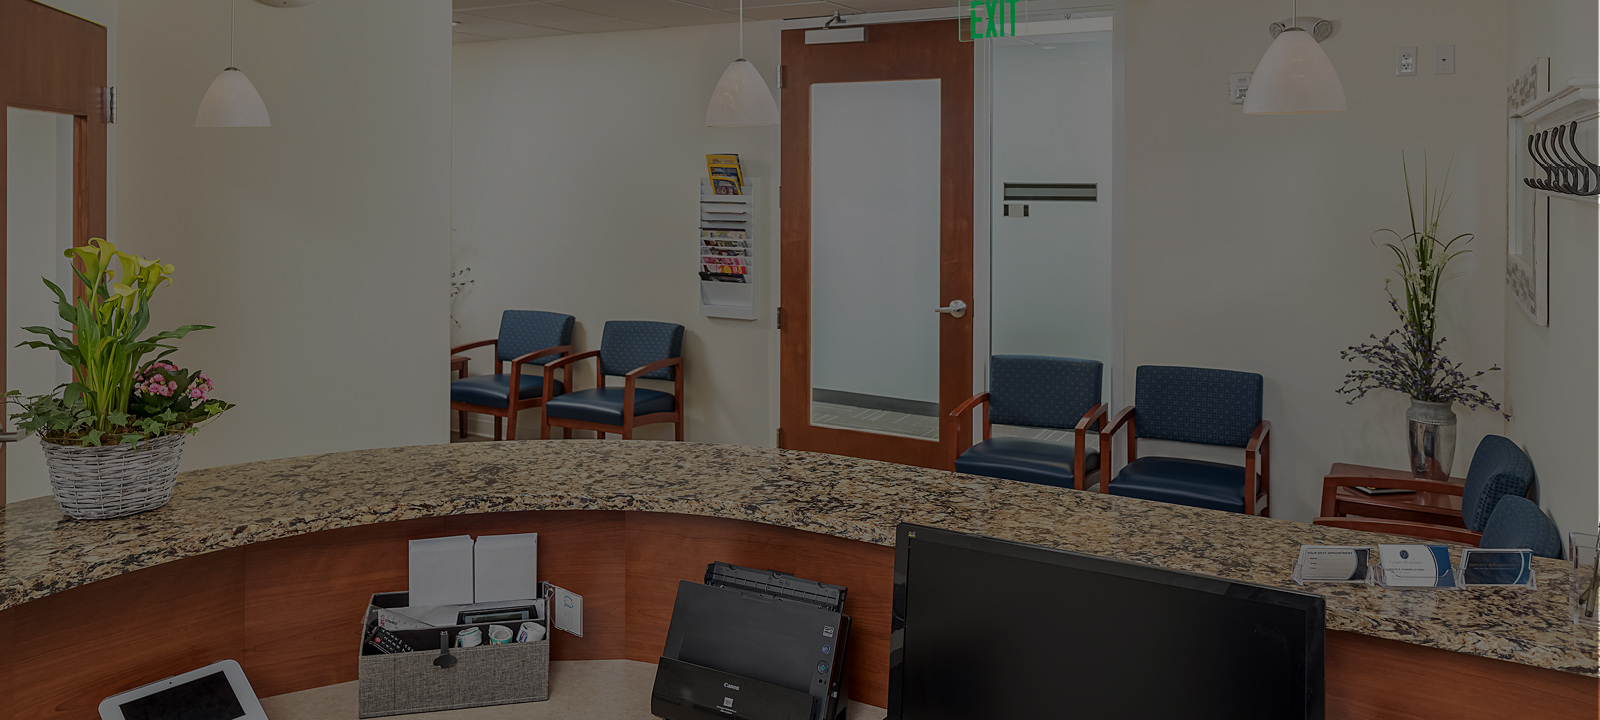 Lexington Prosthodontics front desk